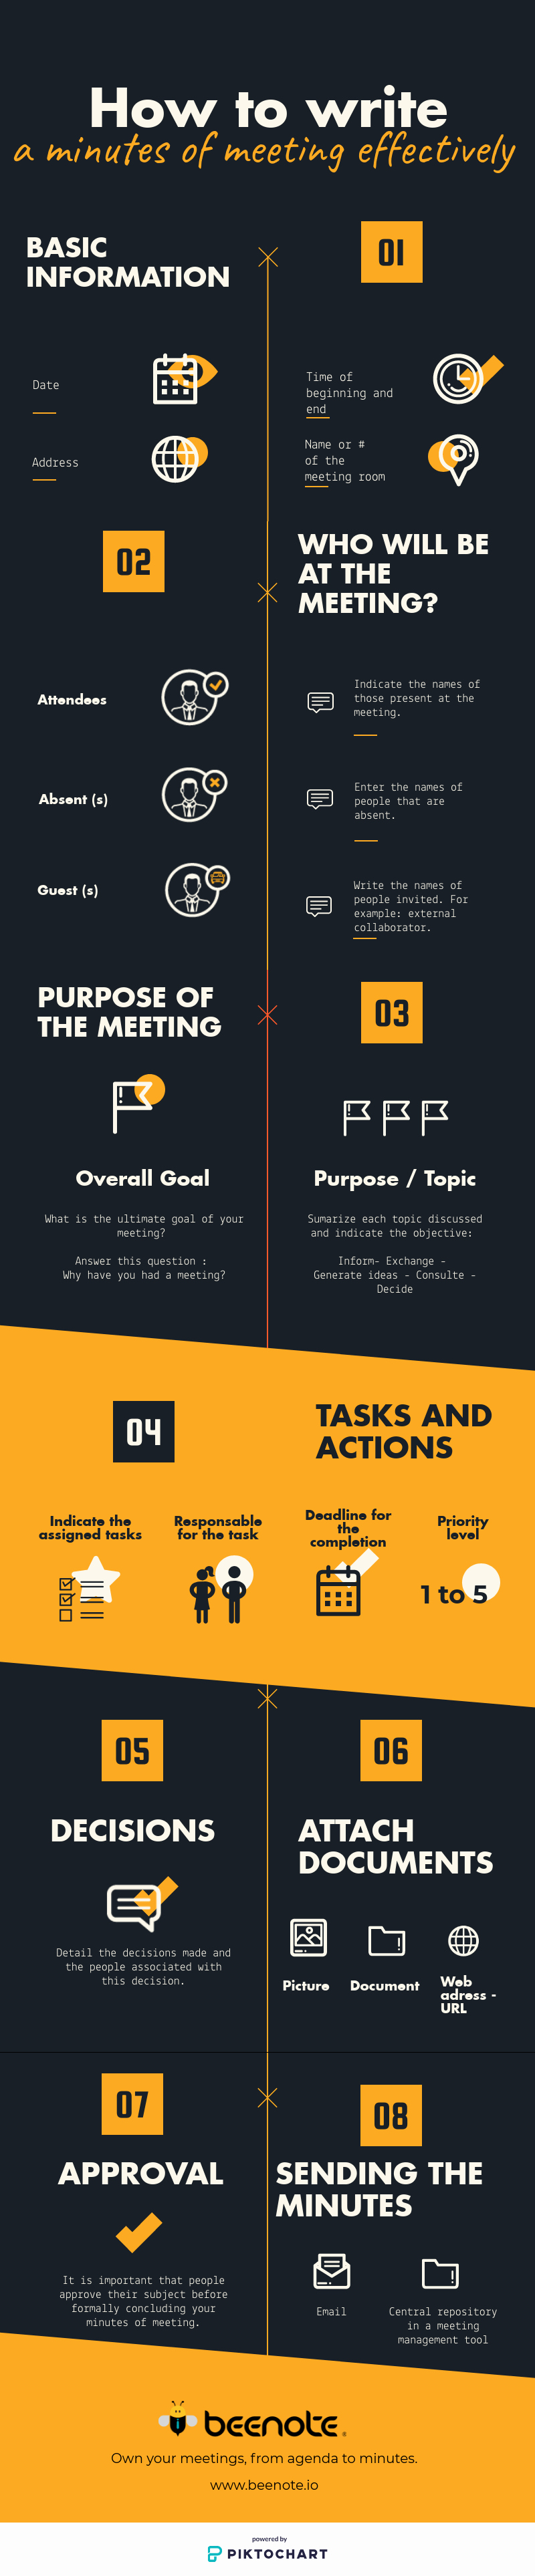 How to Write Minutes Inspirational How to Write A Minutes Of Meeting Effectively Basic